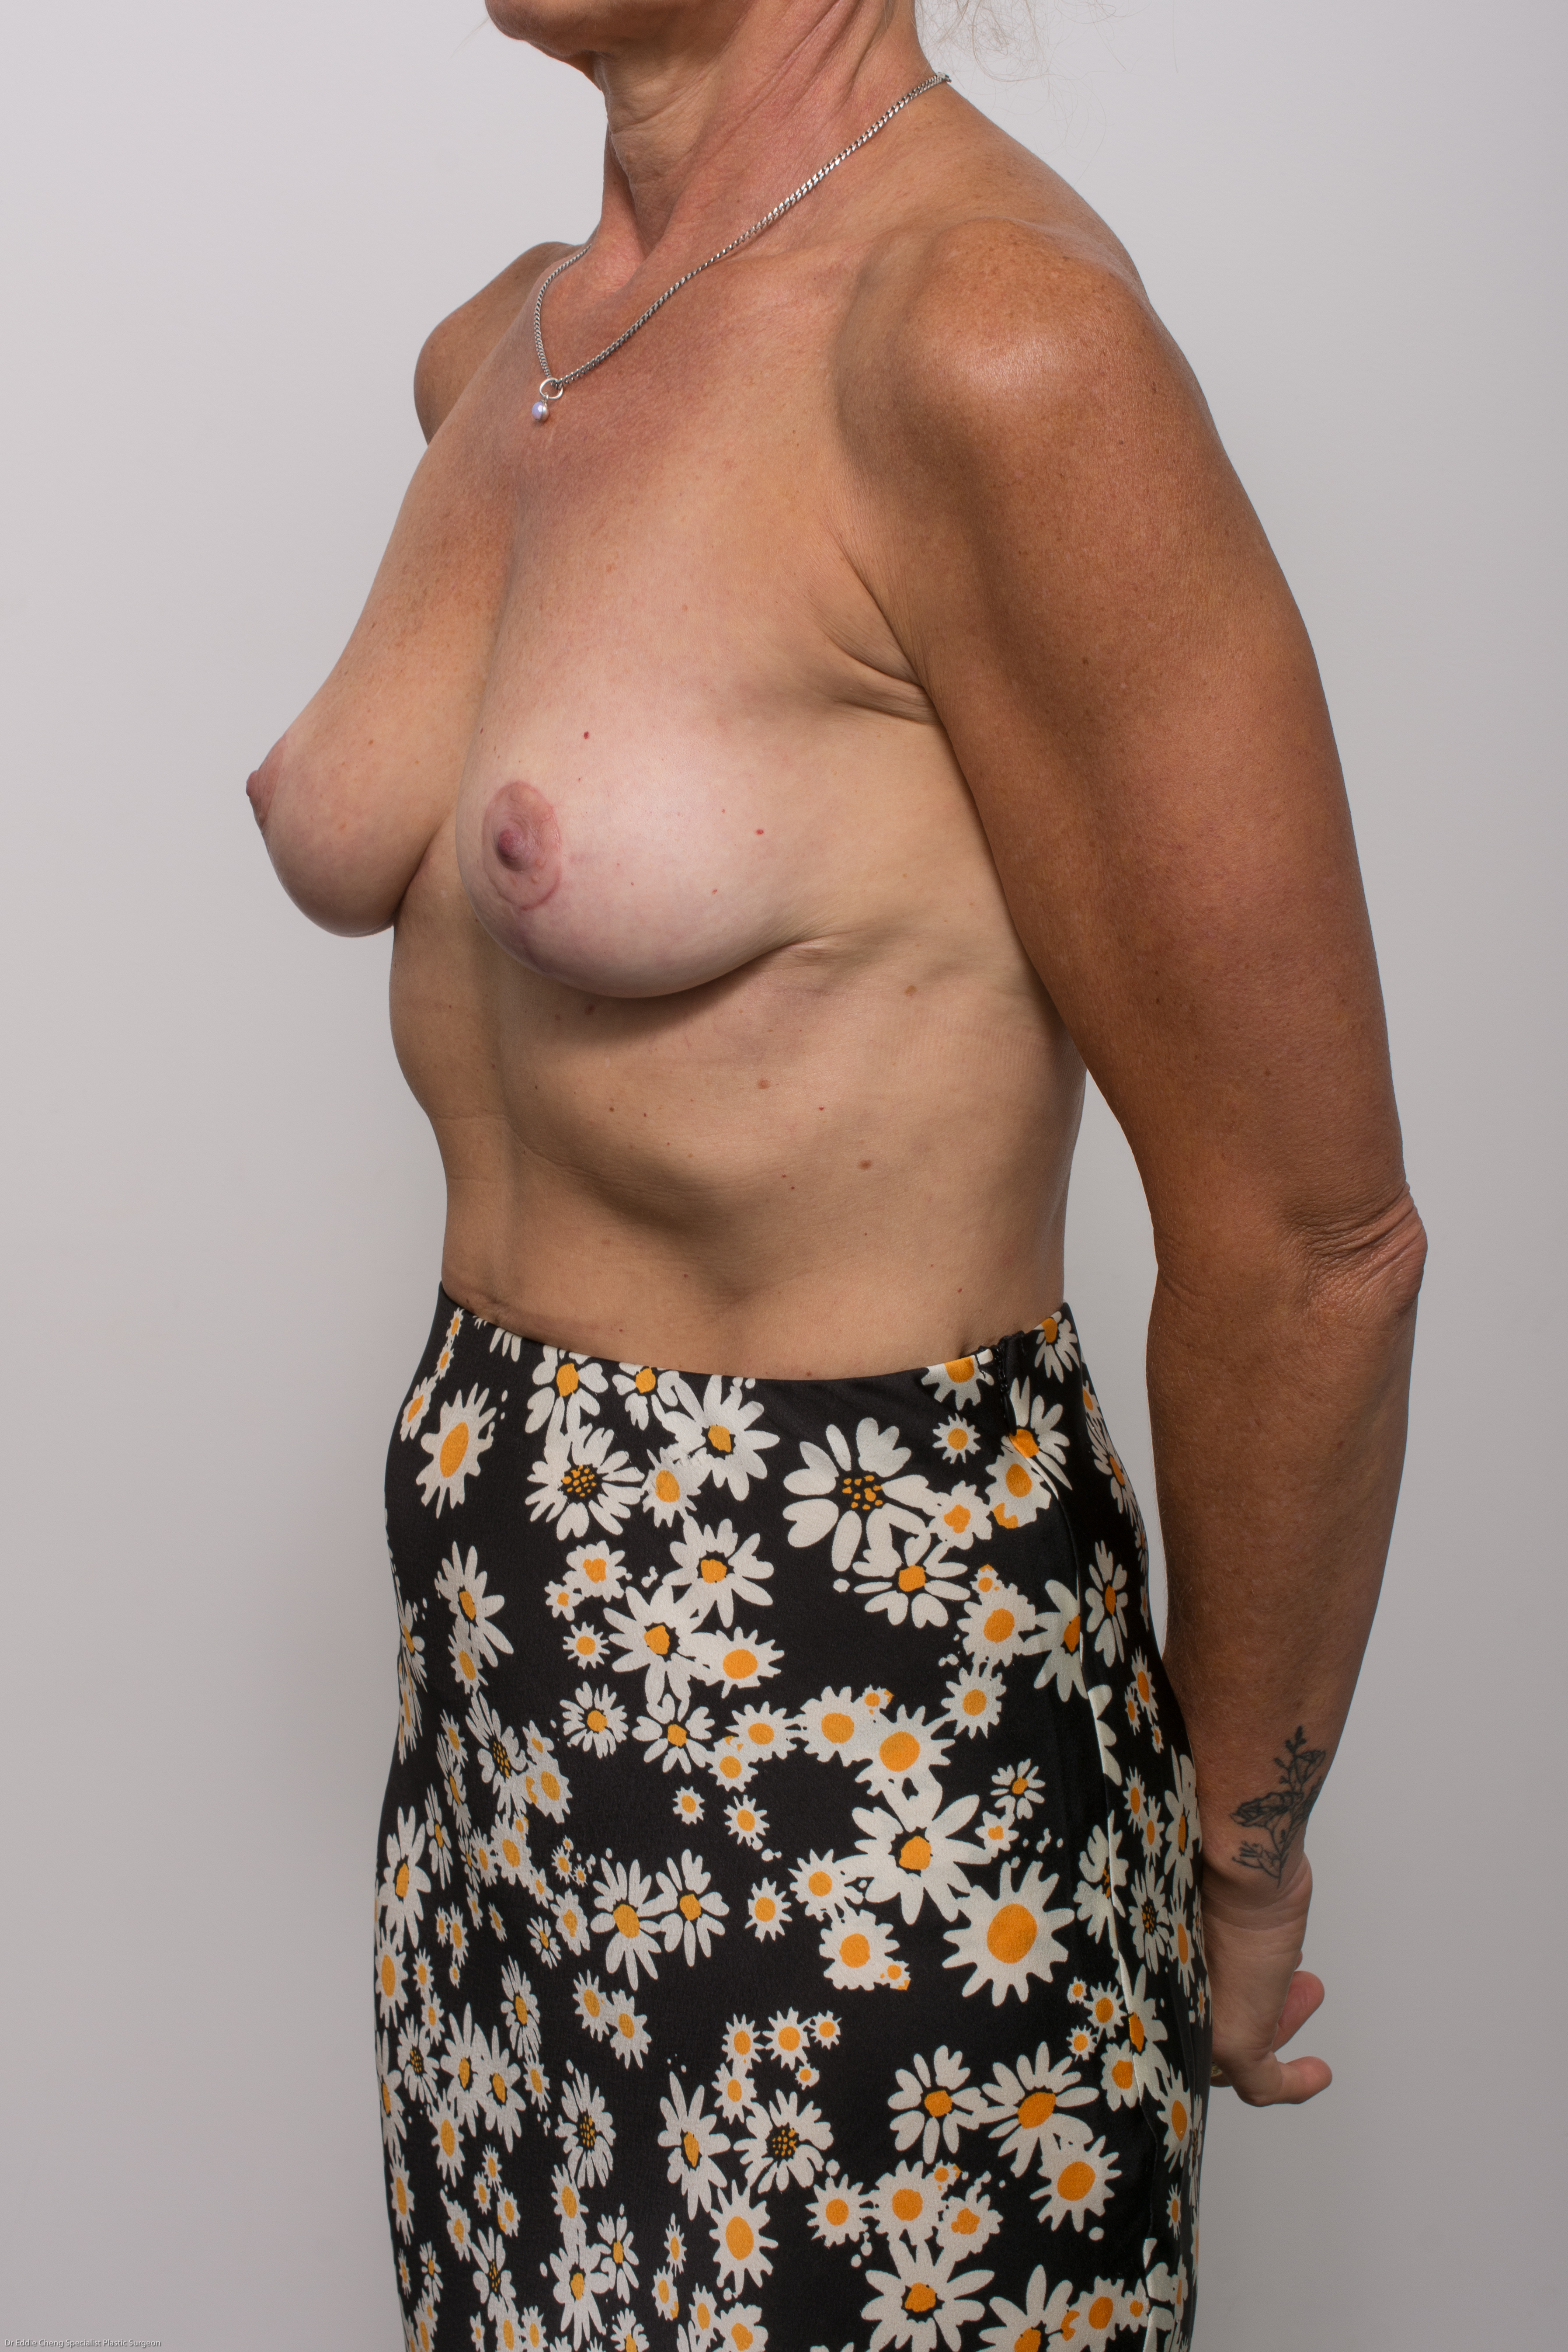 post op removal of breast implants and mastopexy (4 of 5)